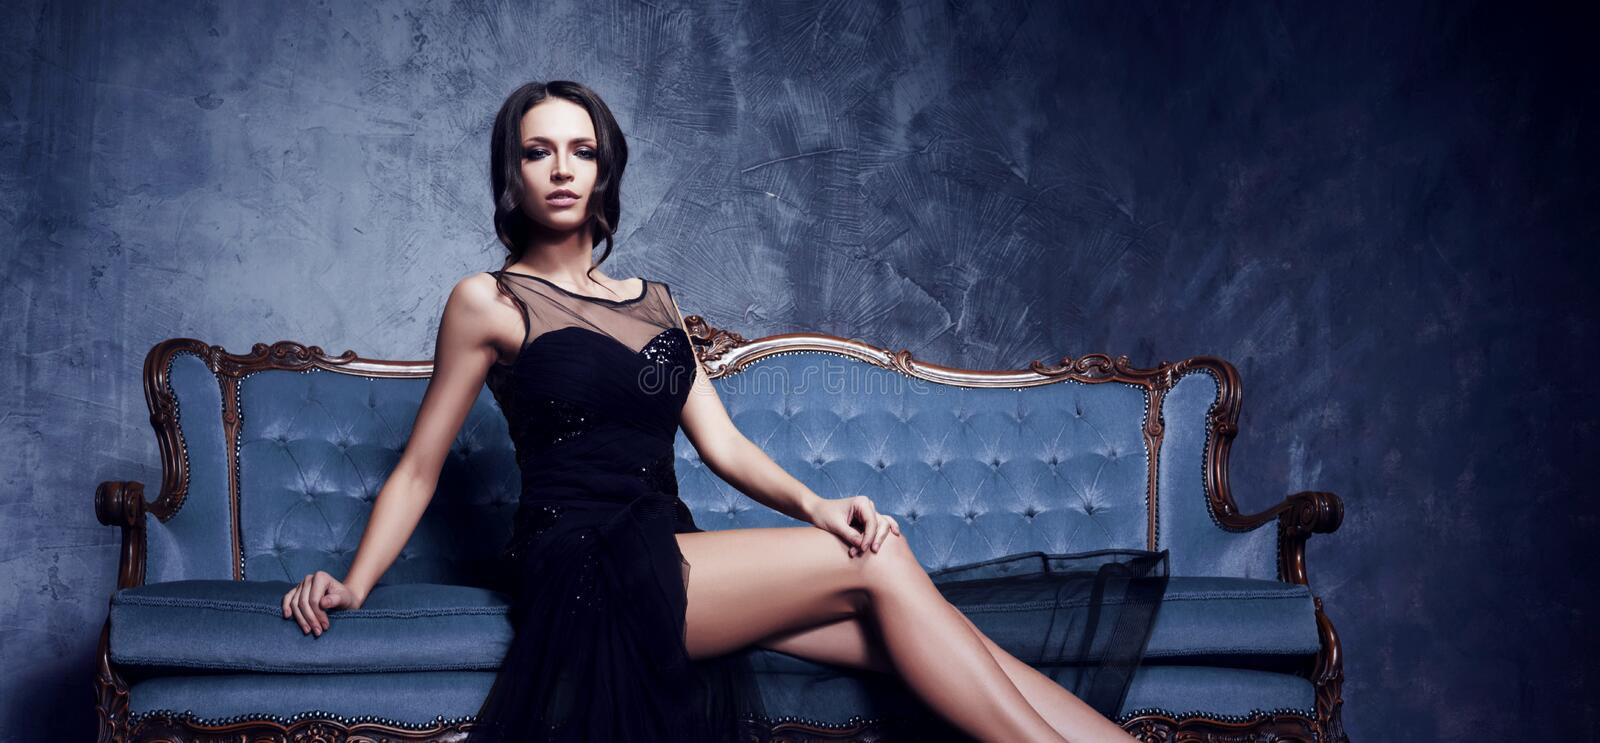 Beautiful and young woman posing in black dress on blue sofa. Vi stock photo